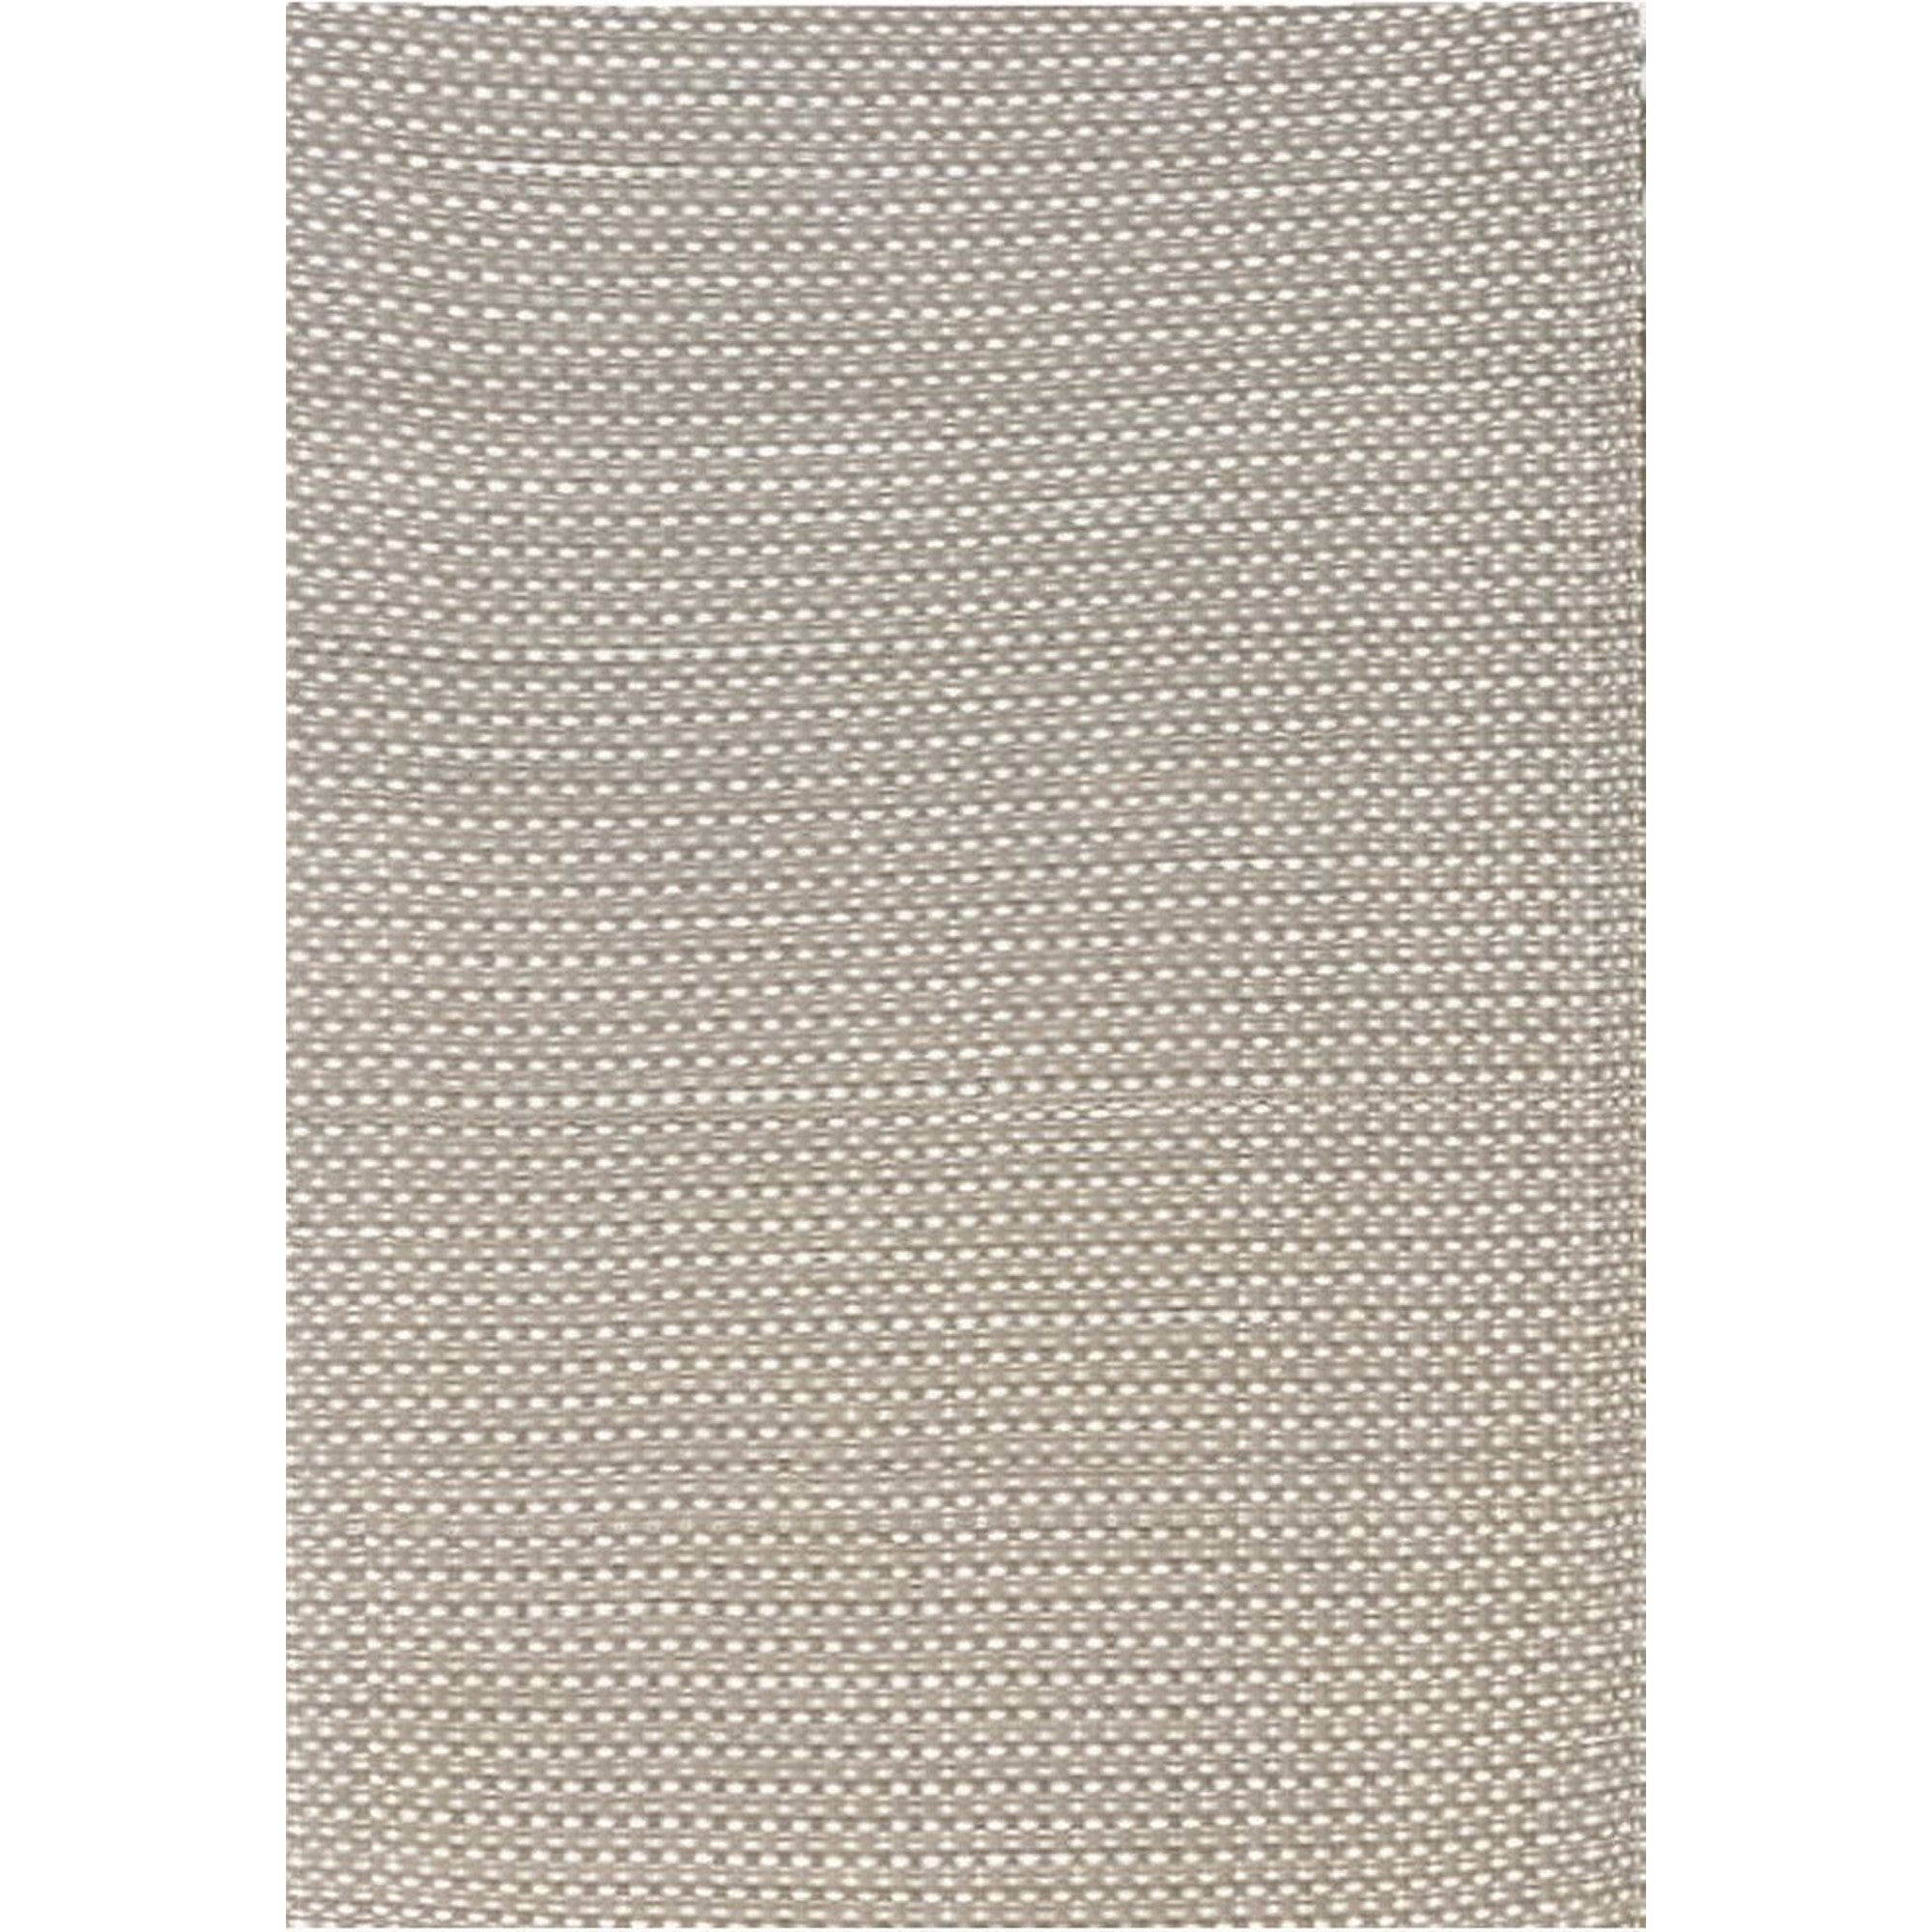 Mad Mats Outdoor Carpet Basic